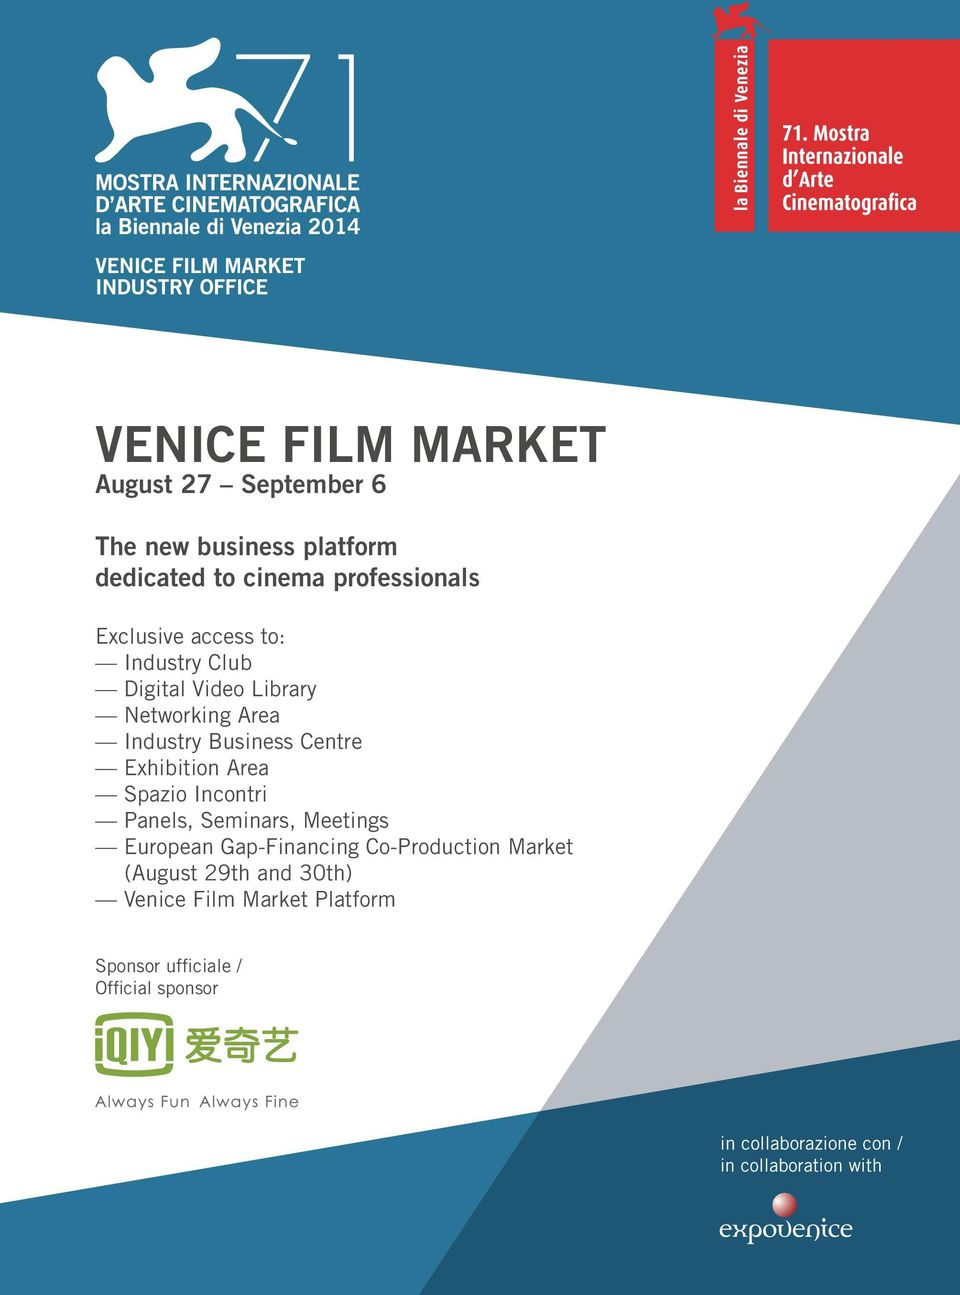 Area Spazio Incontri Panels, Seminars, Meetings European Gap-Financing Co-Production Market (August 29th and